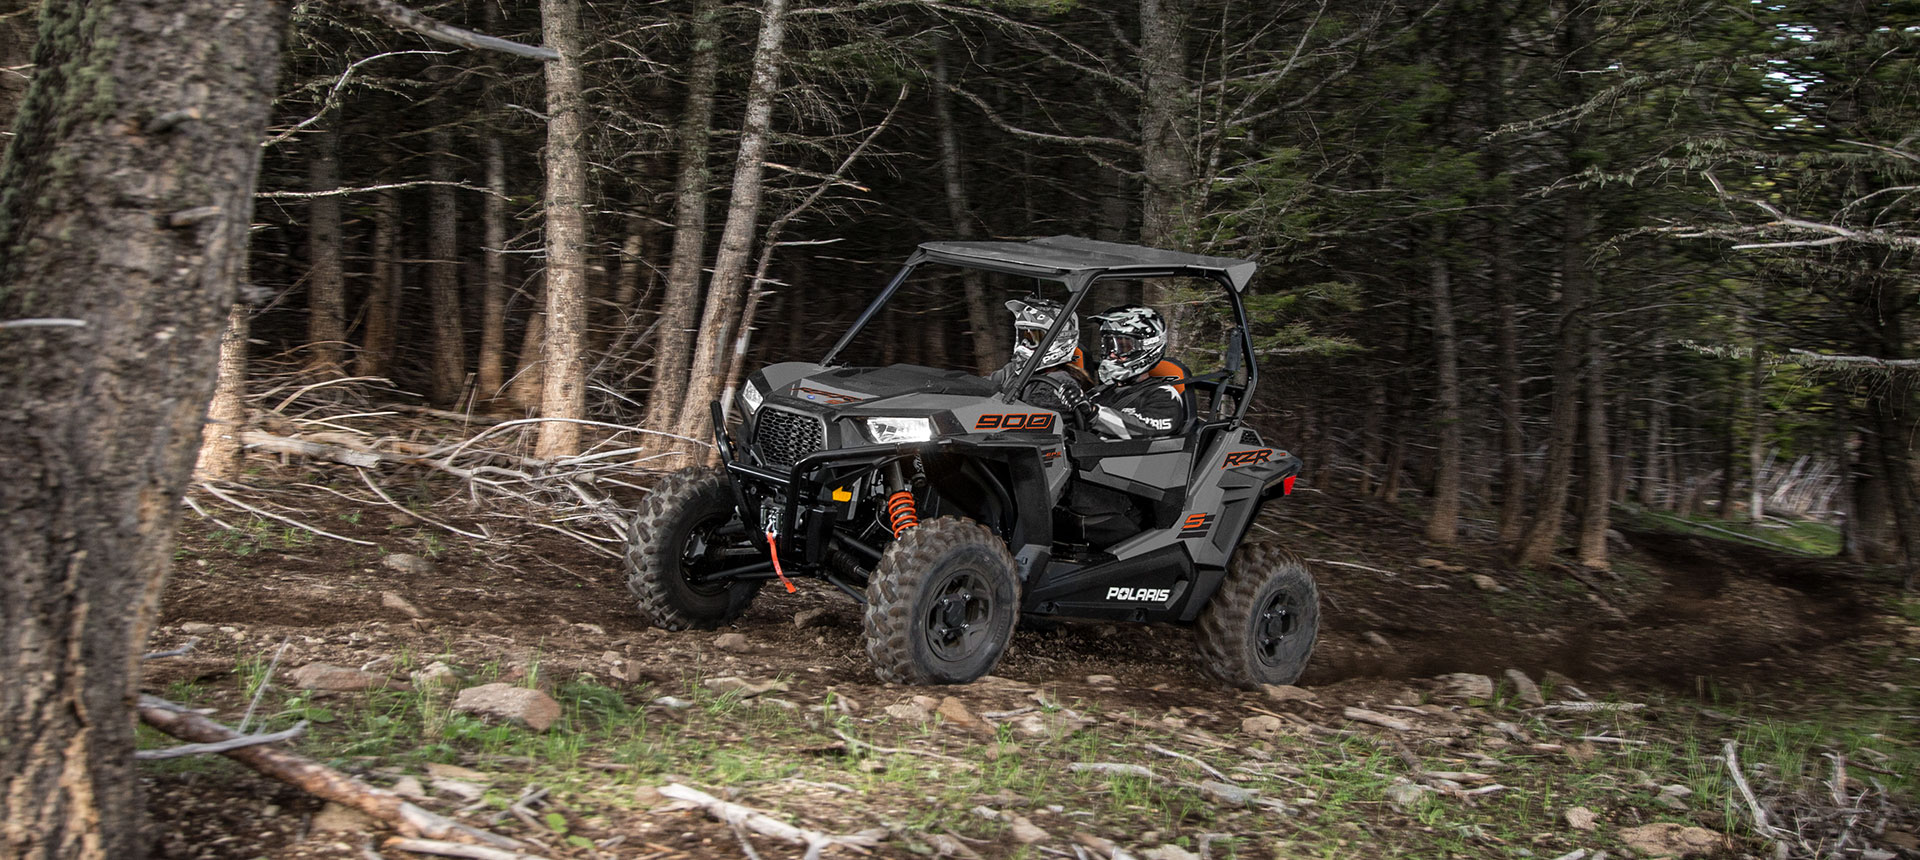 2019 Polaris RZR S 900 in Adams, Massachusetts - Photo 9